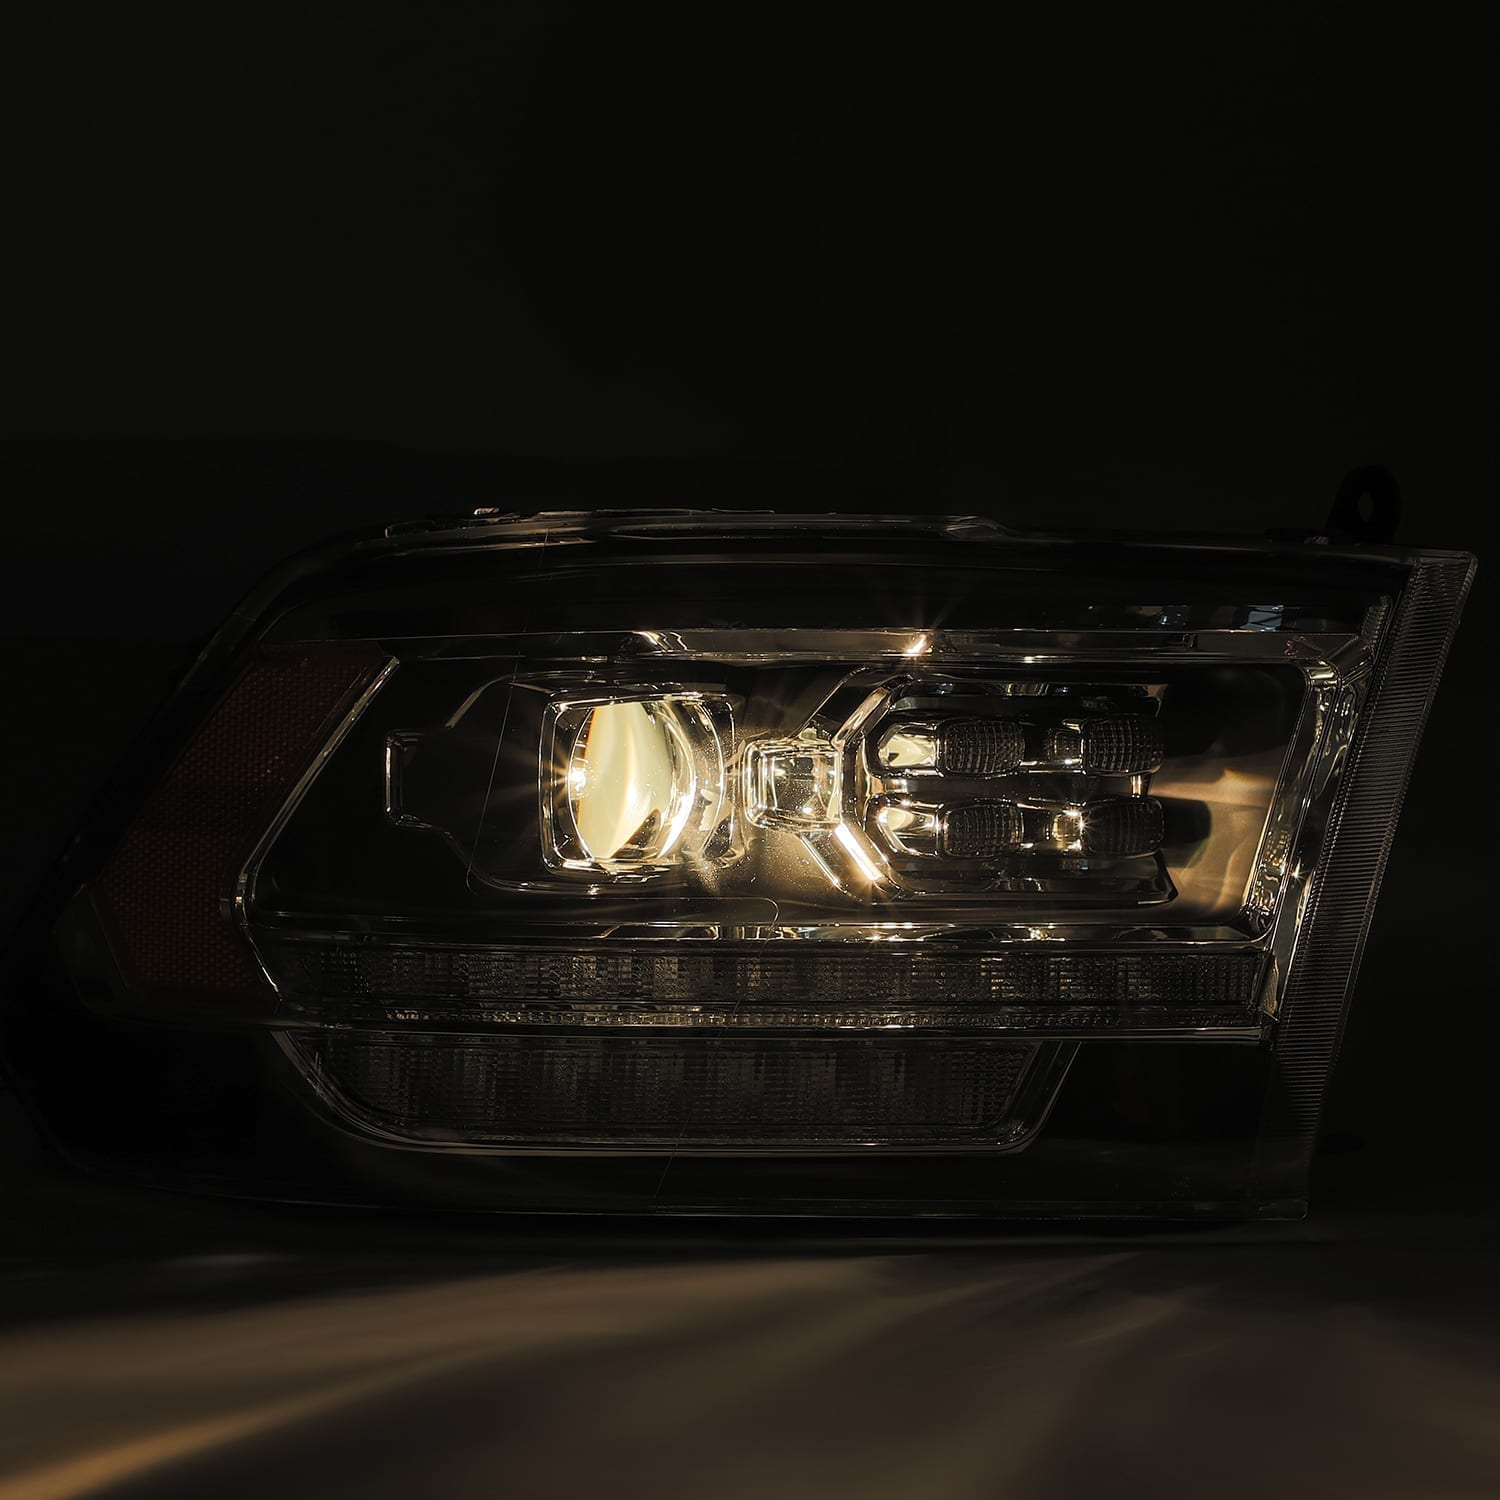 2009 2010 2011 2012 2013 2014 2015 2016 2017 2018 Dodge Ram 5th Gen 2500 Style PRO-Series Projector Headlights